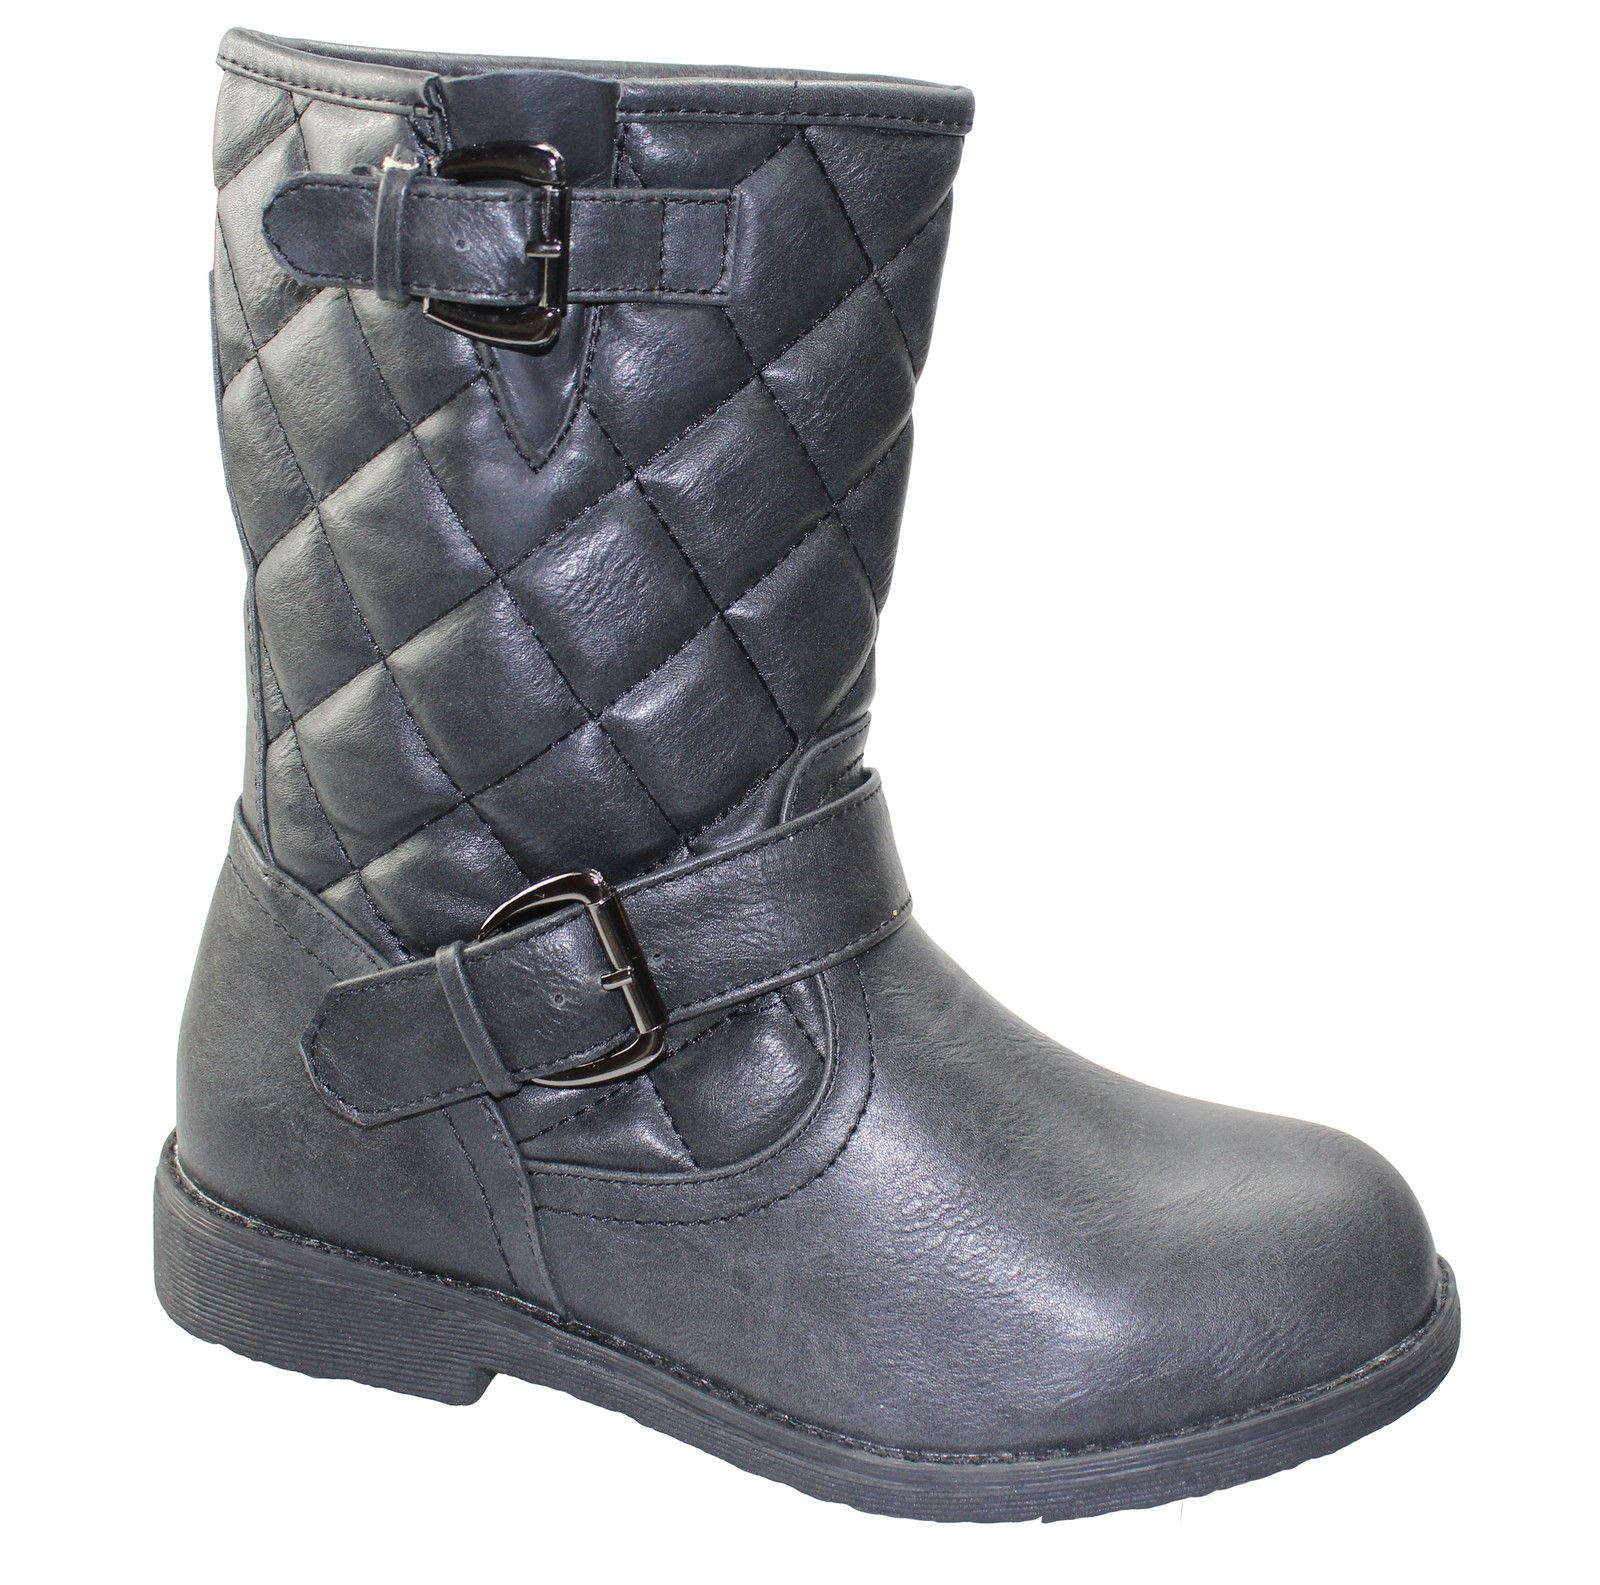 womens boots winter warm cozy snow quilted biker